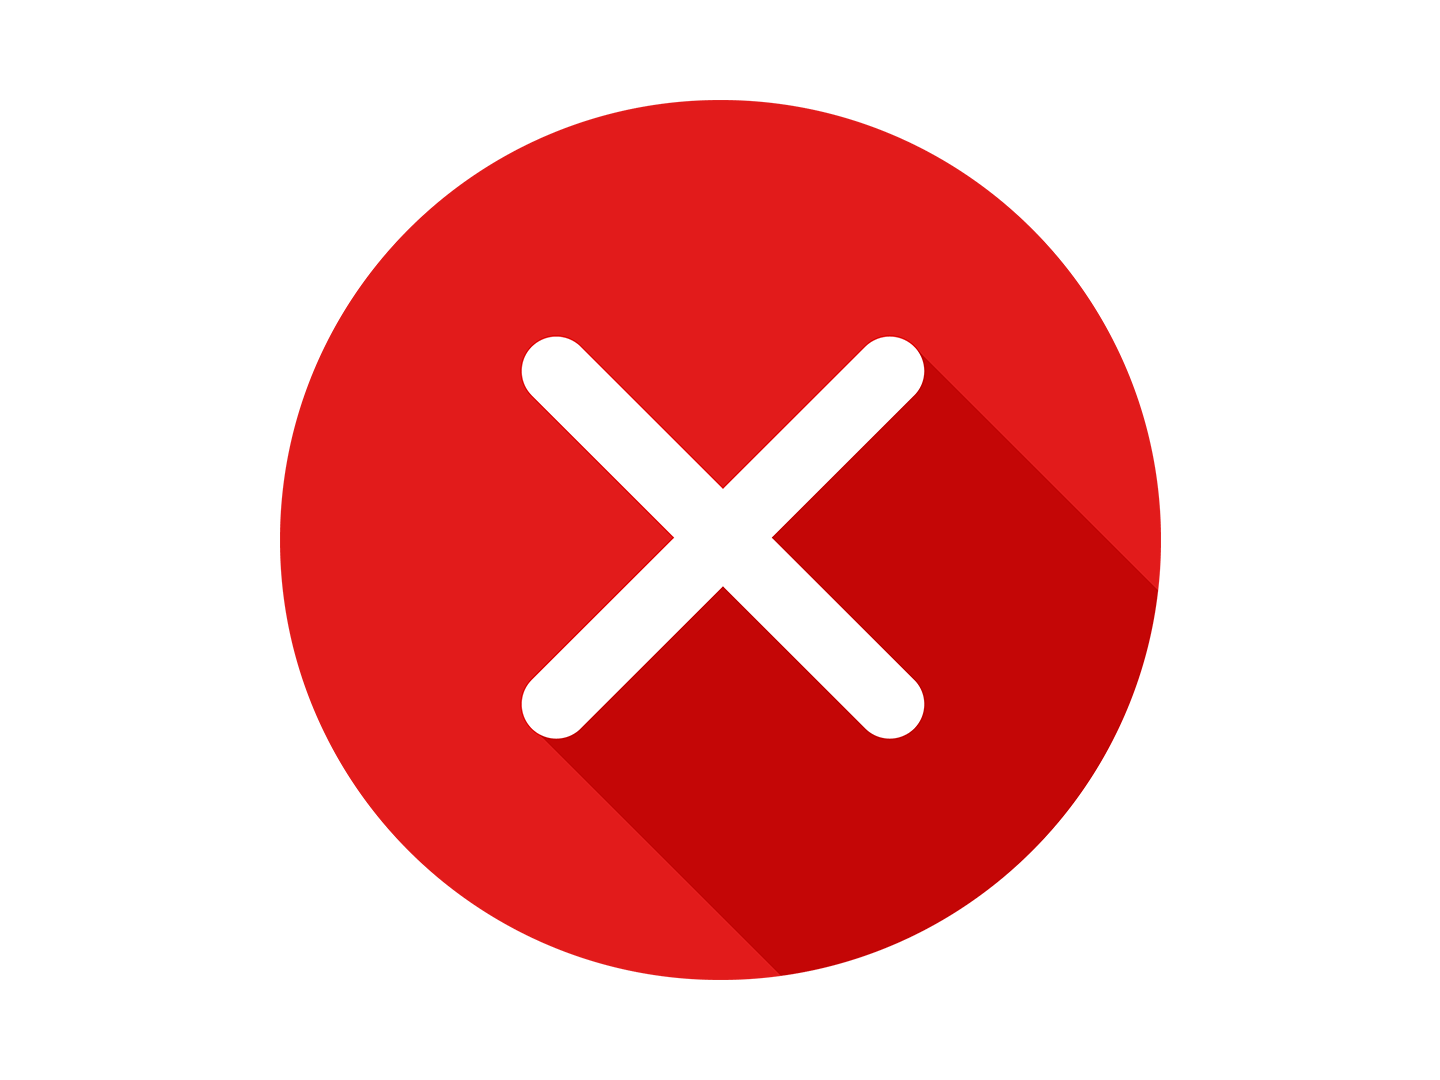 X Delete Round Flat Icon Free Download by Icons by Alfredo on Dribbble.